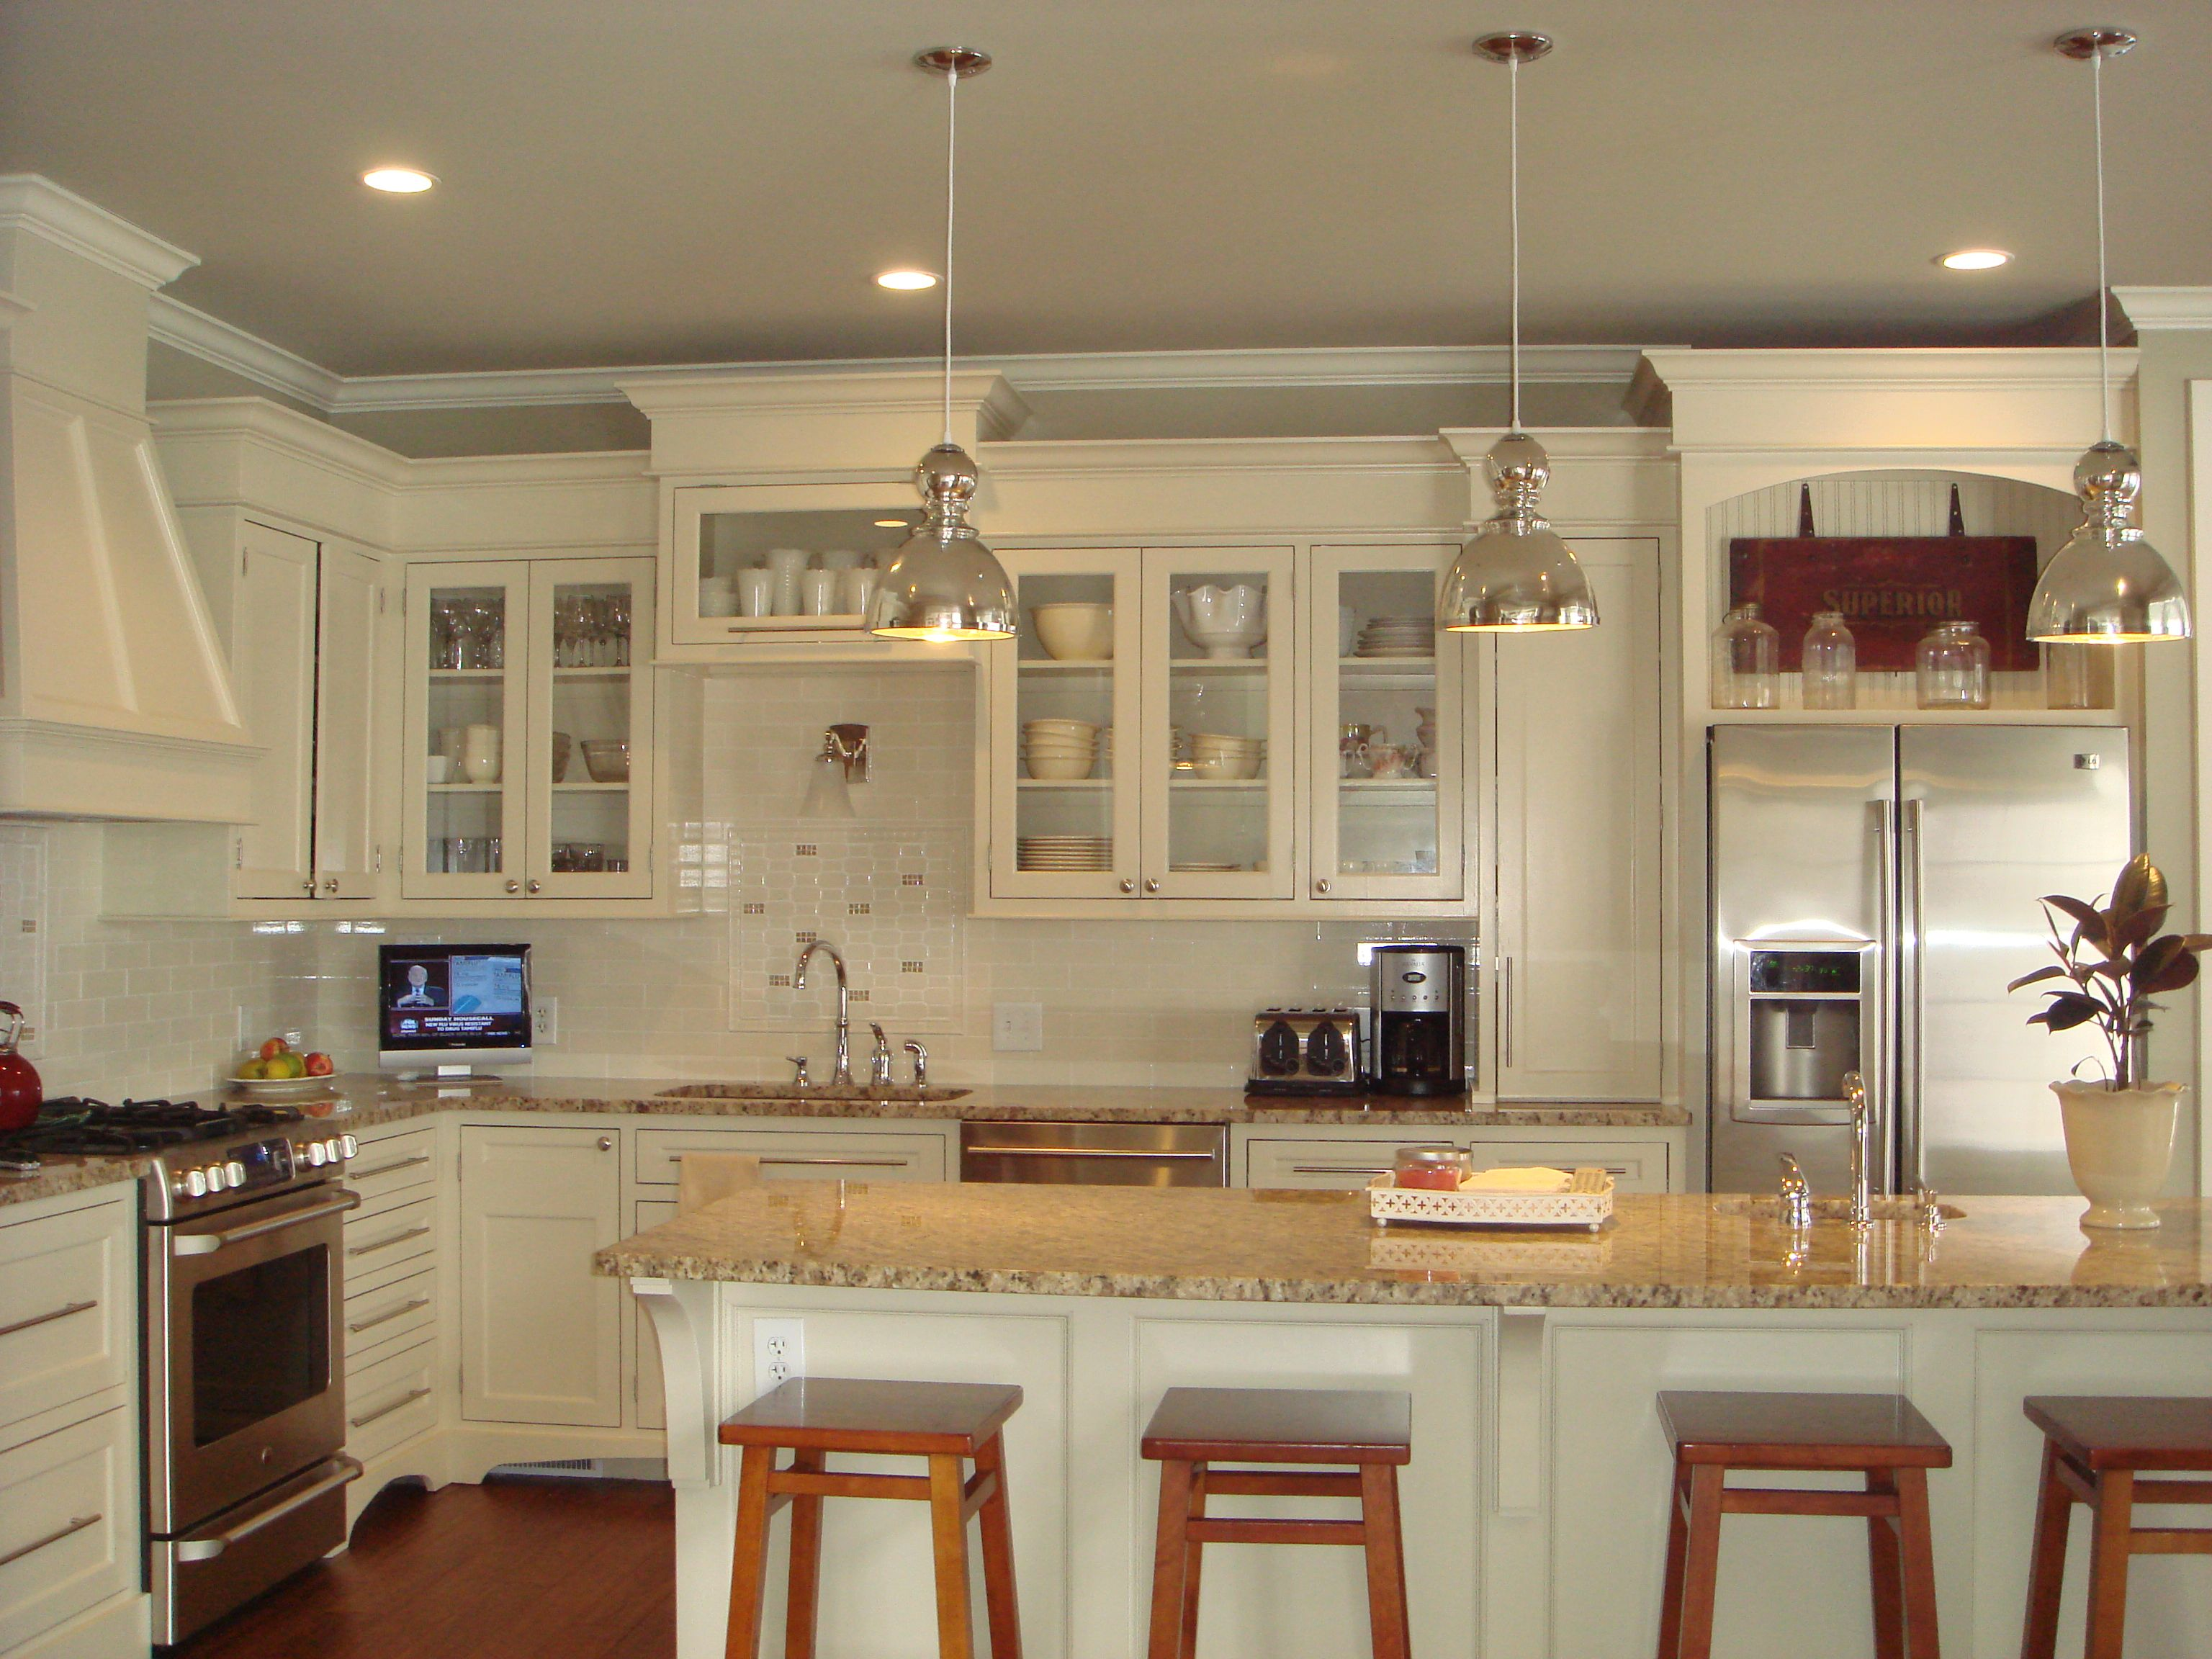 Refinished White Cabinets Want To Repaint The Cabinets White Cream Upgrade To Granite Or